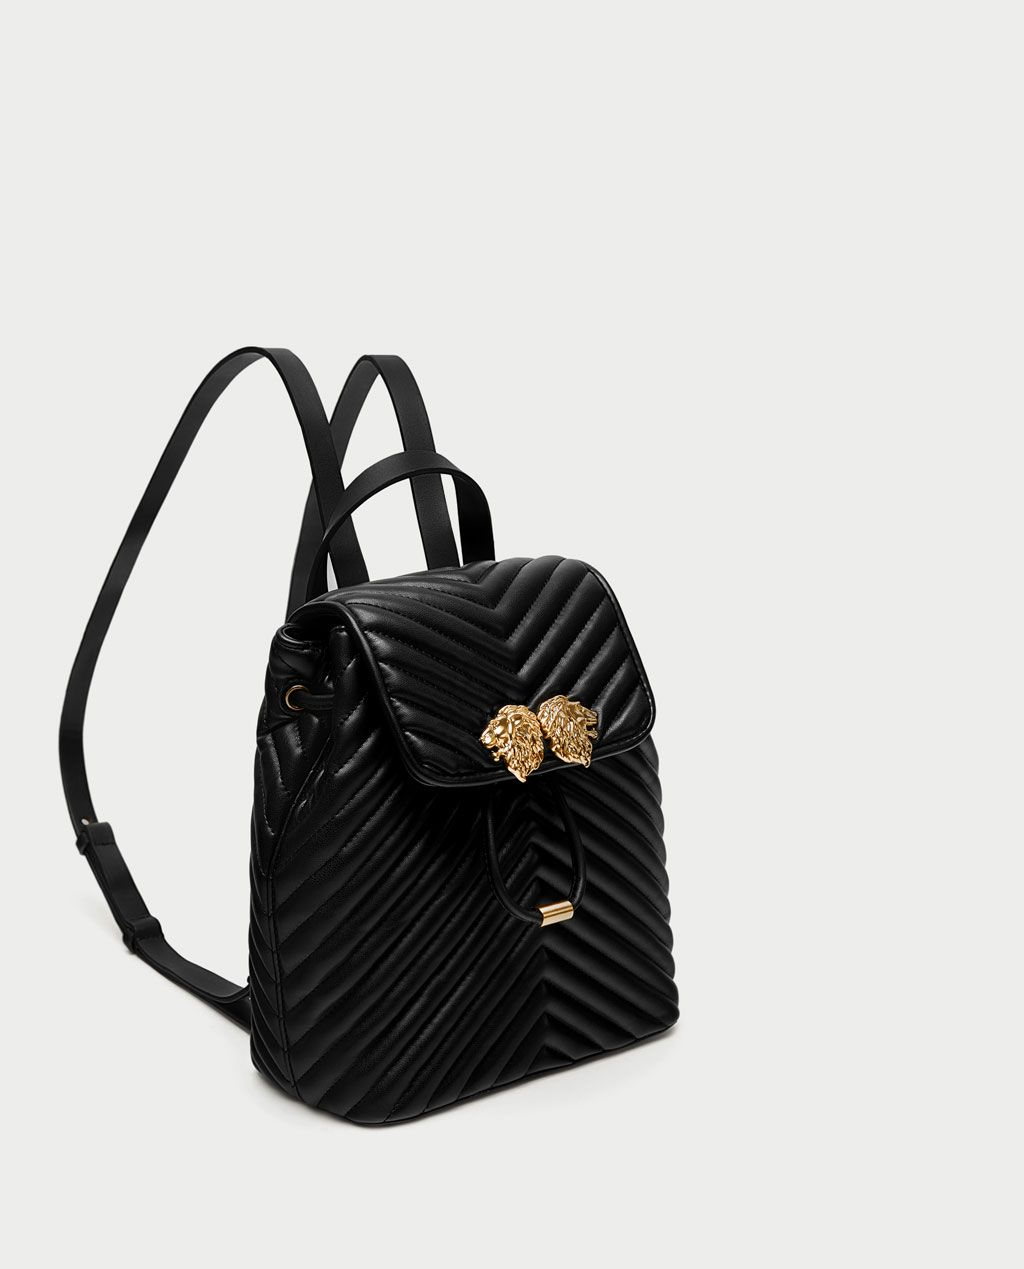 ecb801dcb2 Image 1 of QUILTED BACKPACK WITH LION DETAILS from Zara